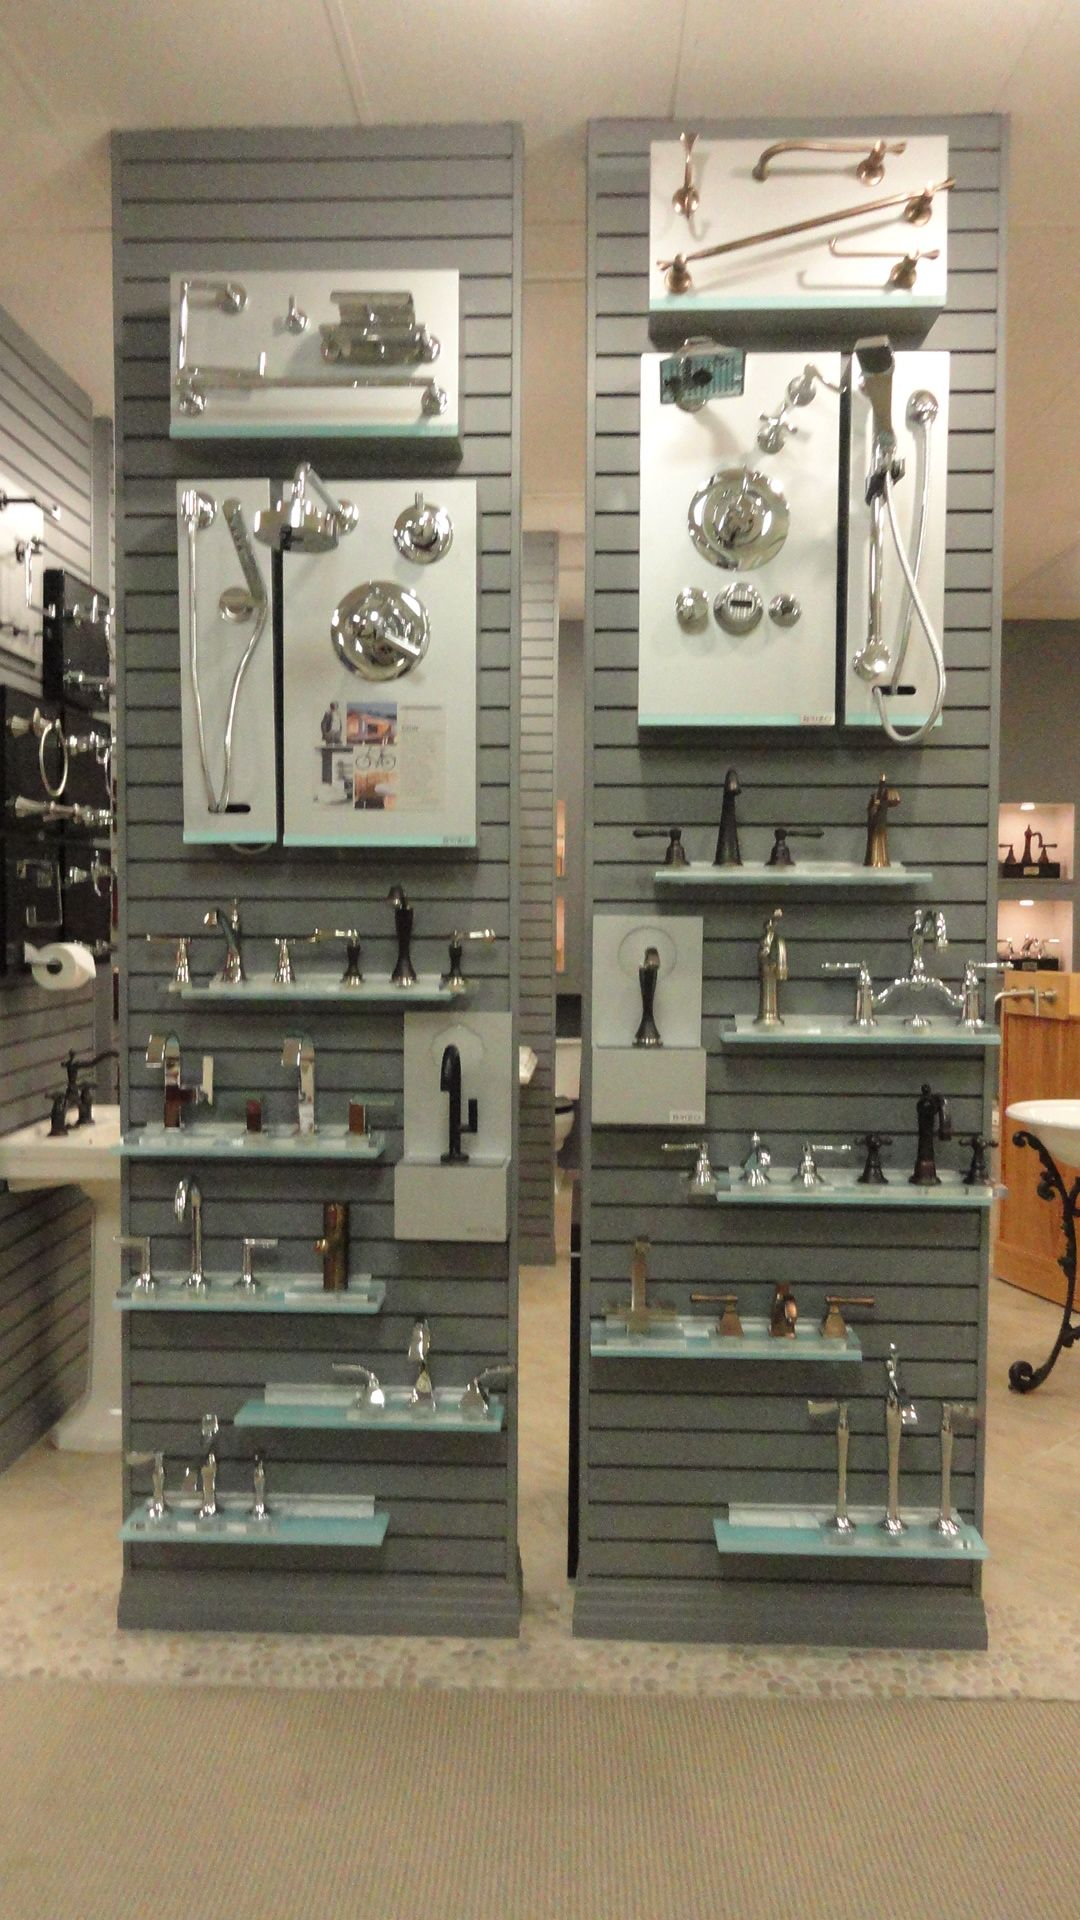 Brizo Faucets, Showers, Bathroom Faucets And Accessories In Our Denver  Metro Area Showroom.